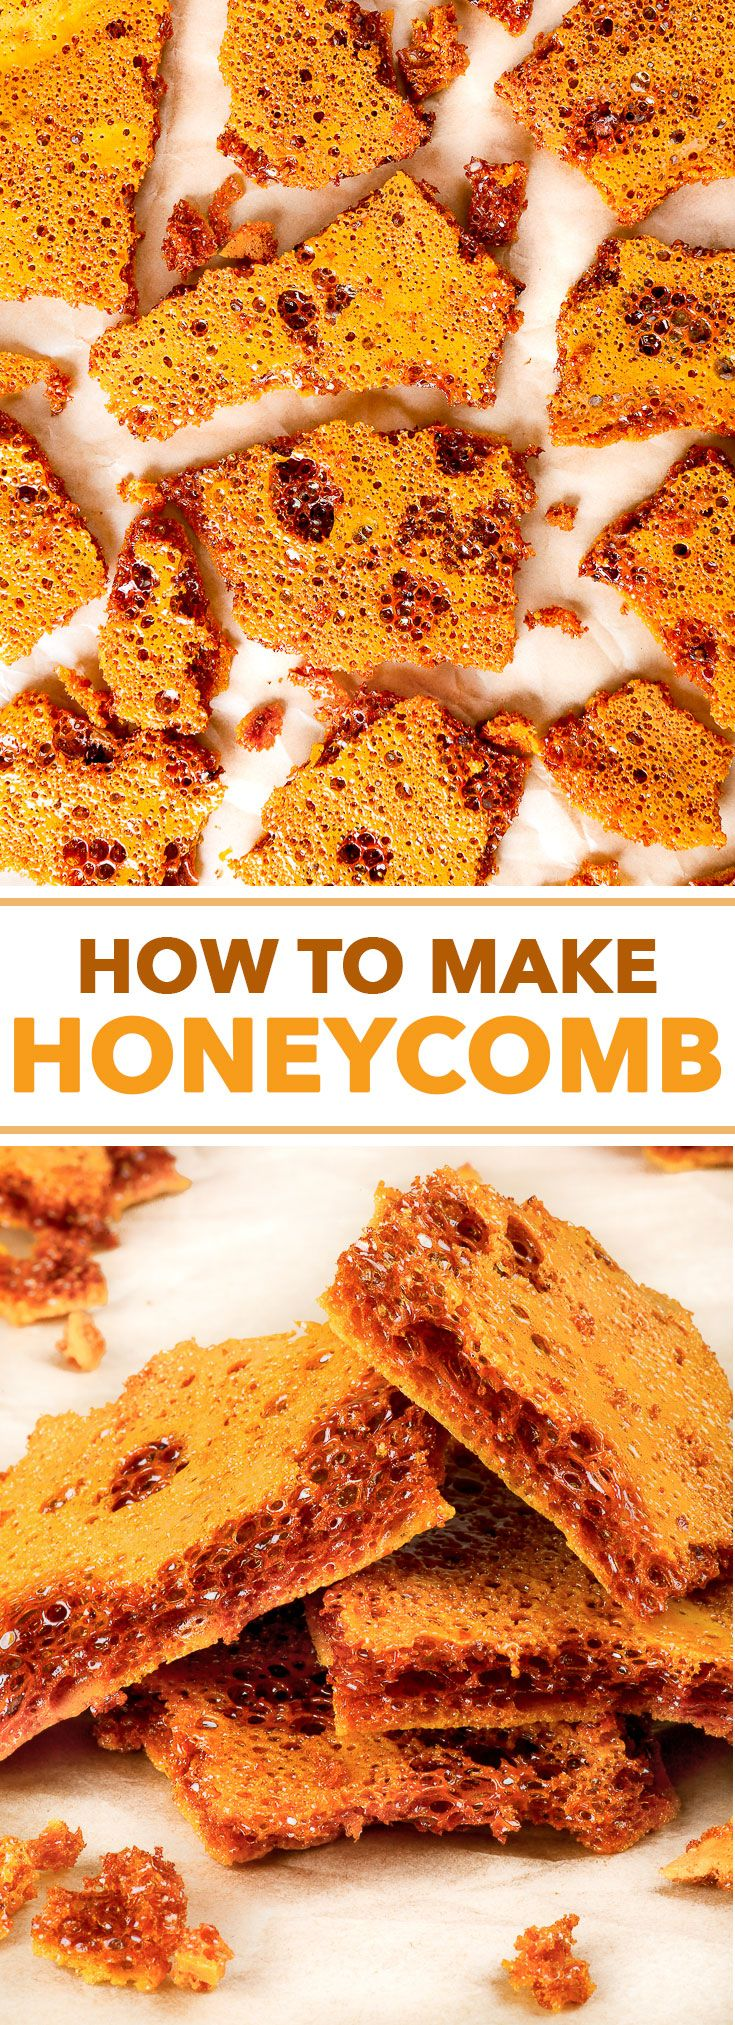 How To Make Homemade Honeycomb Candy  Ever wondered how to make honeycomb  Well, wonder no more   this quick and easy recipe for homemade honeycomb candy requires only 4 ingredients and 10 minutes! is part of Honeycomb candy -